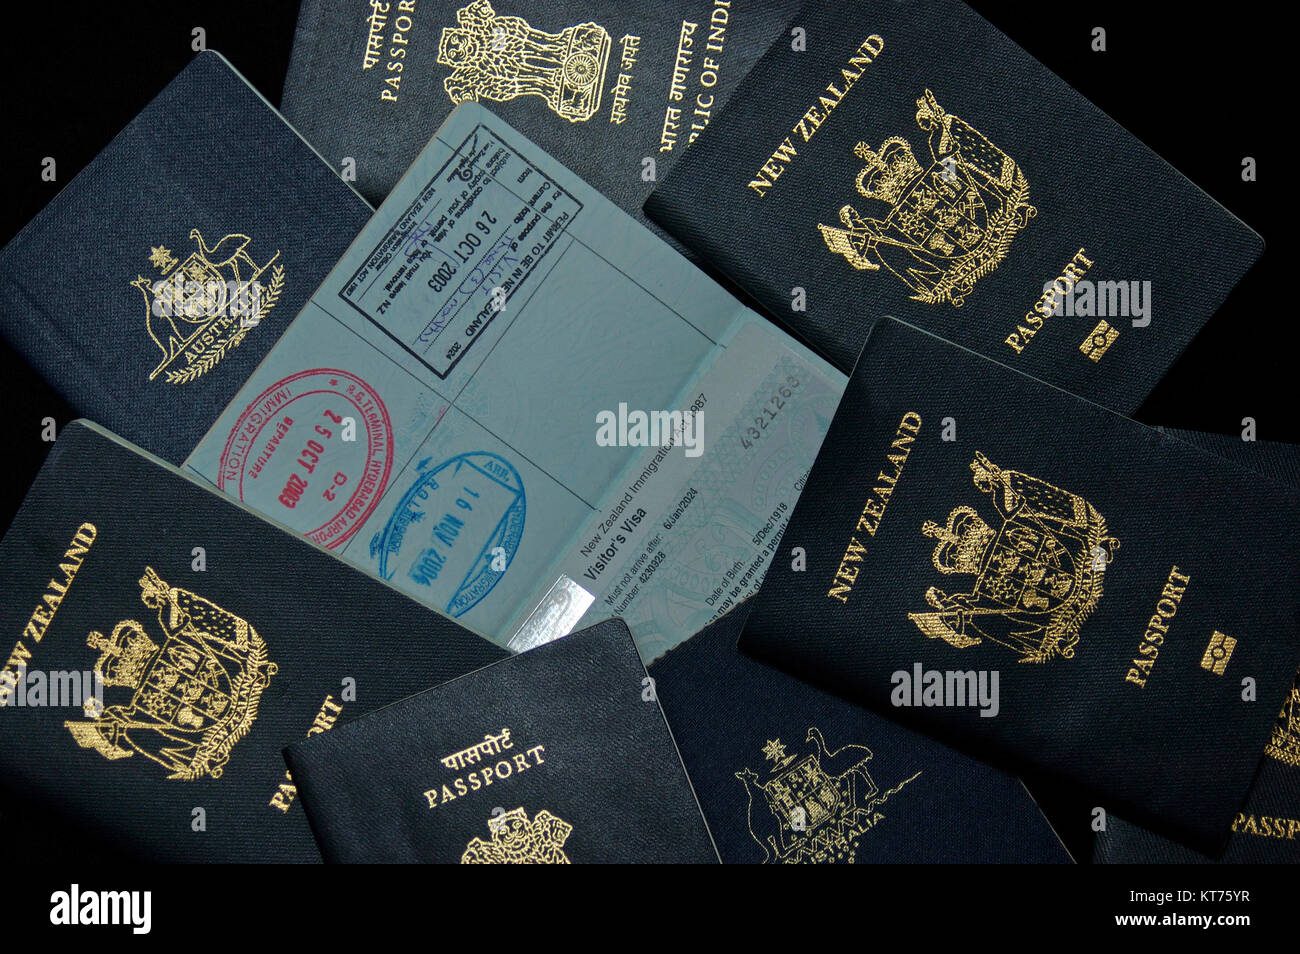 Embossing Stock Photos & Embossing Stock Images - Alamy